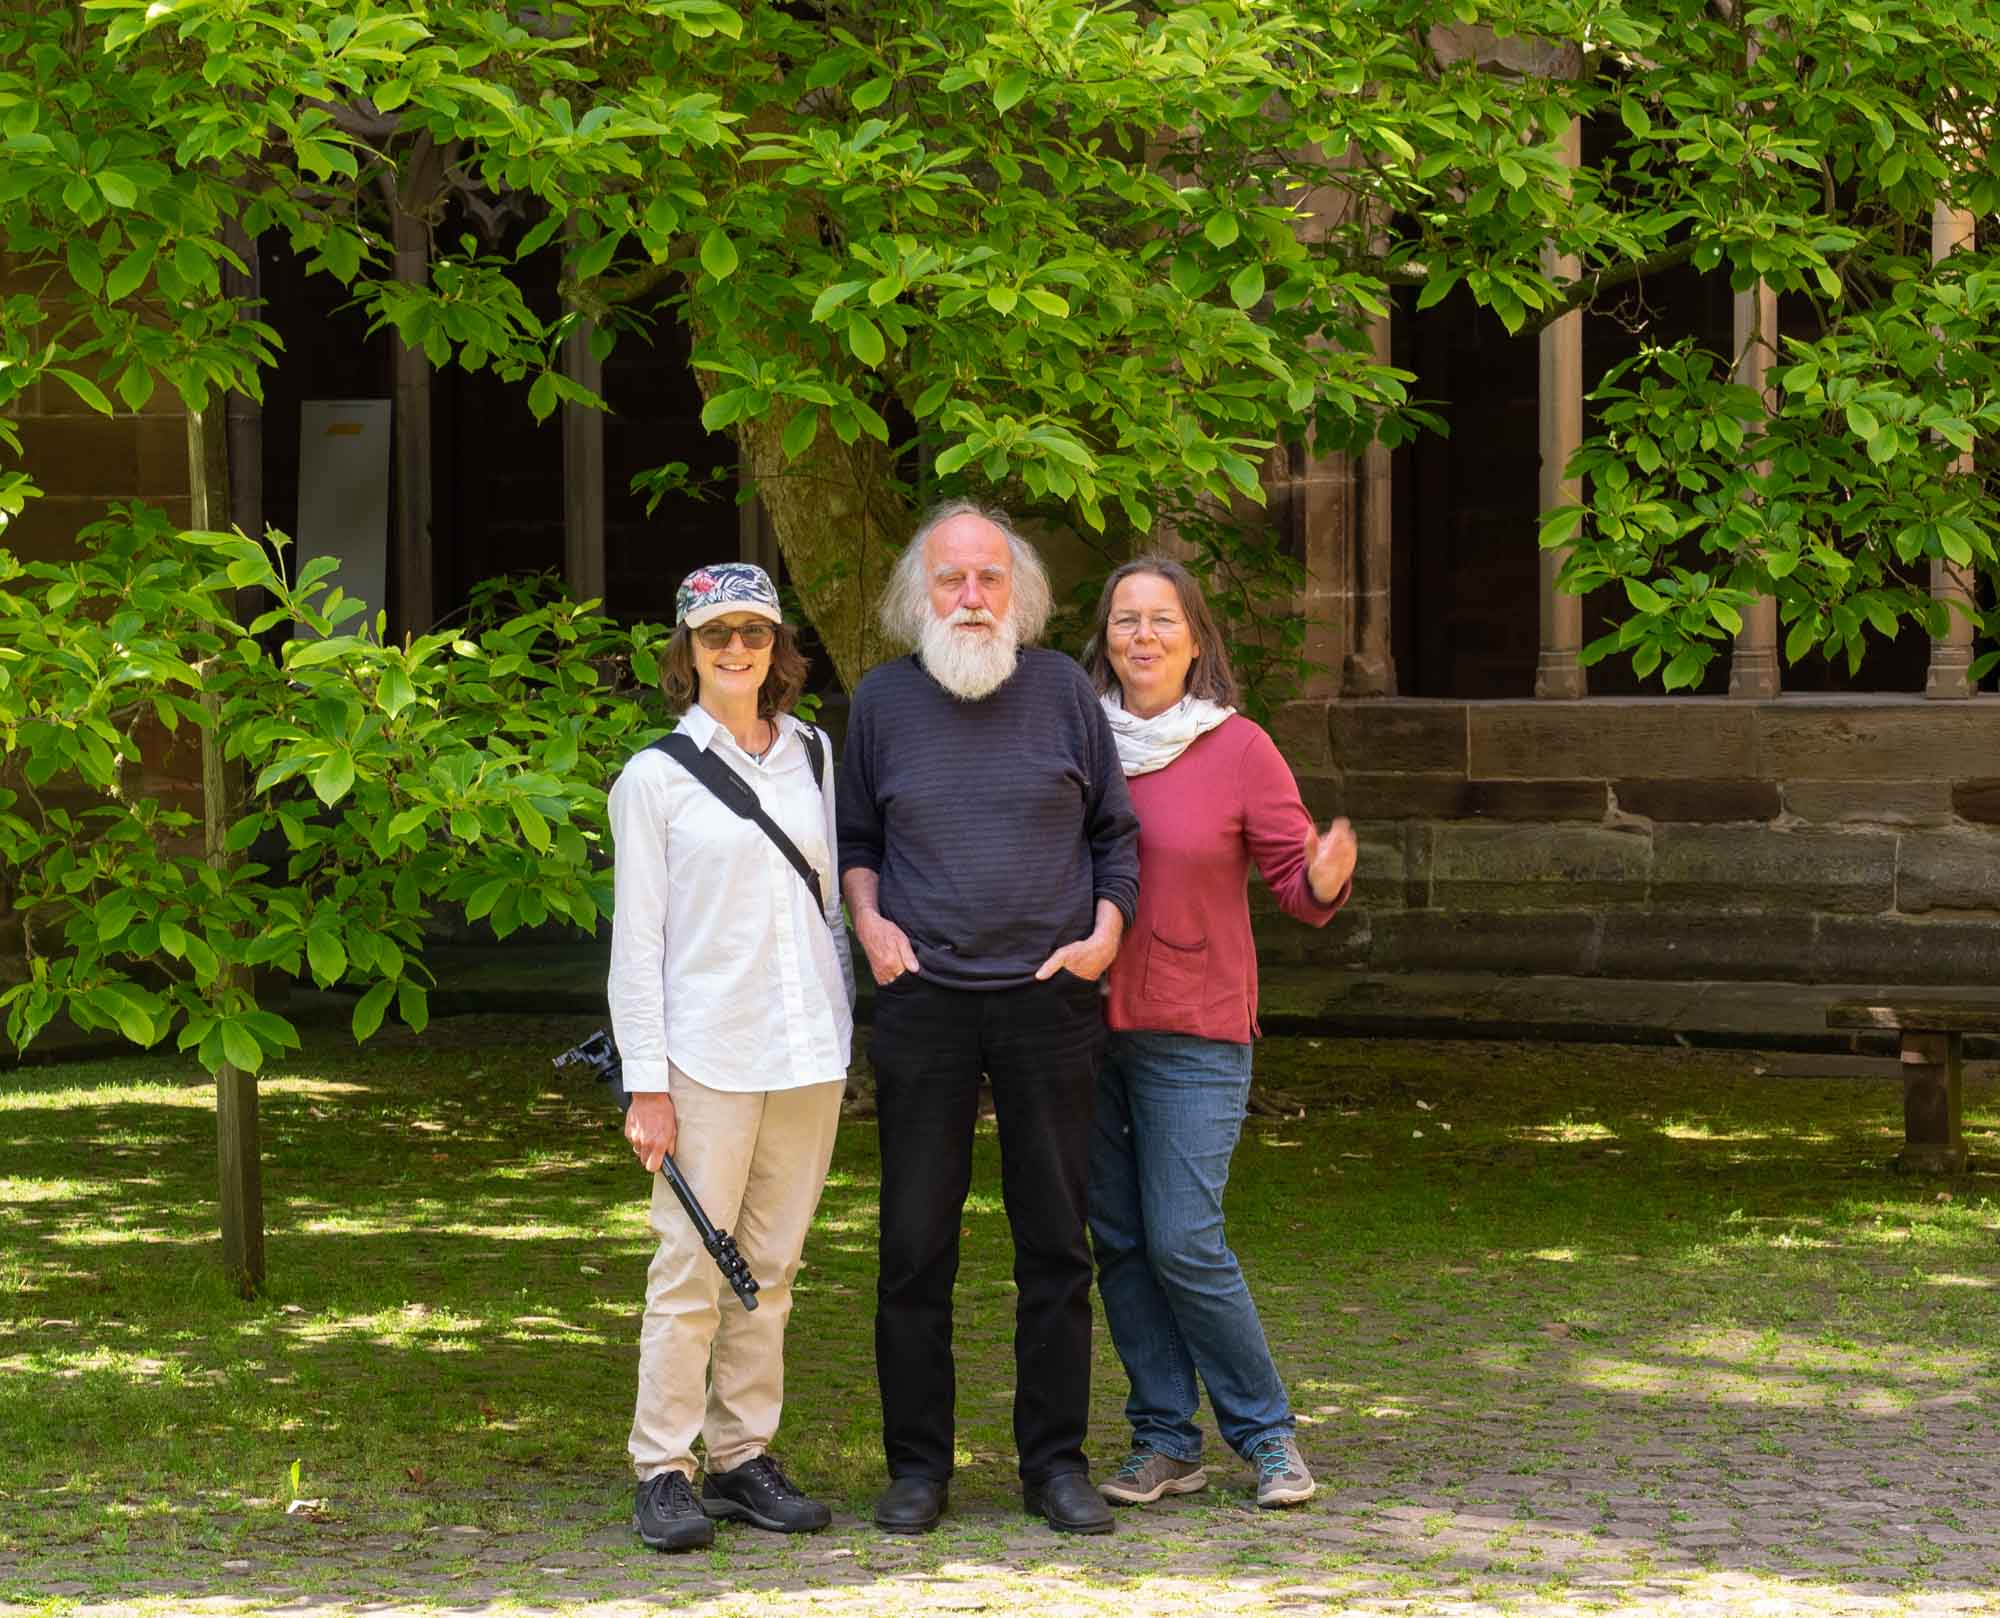 Kerri, Heinz and Anne in one of the monastery courtyards